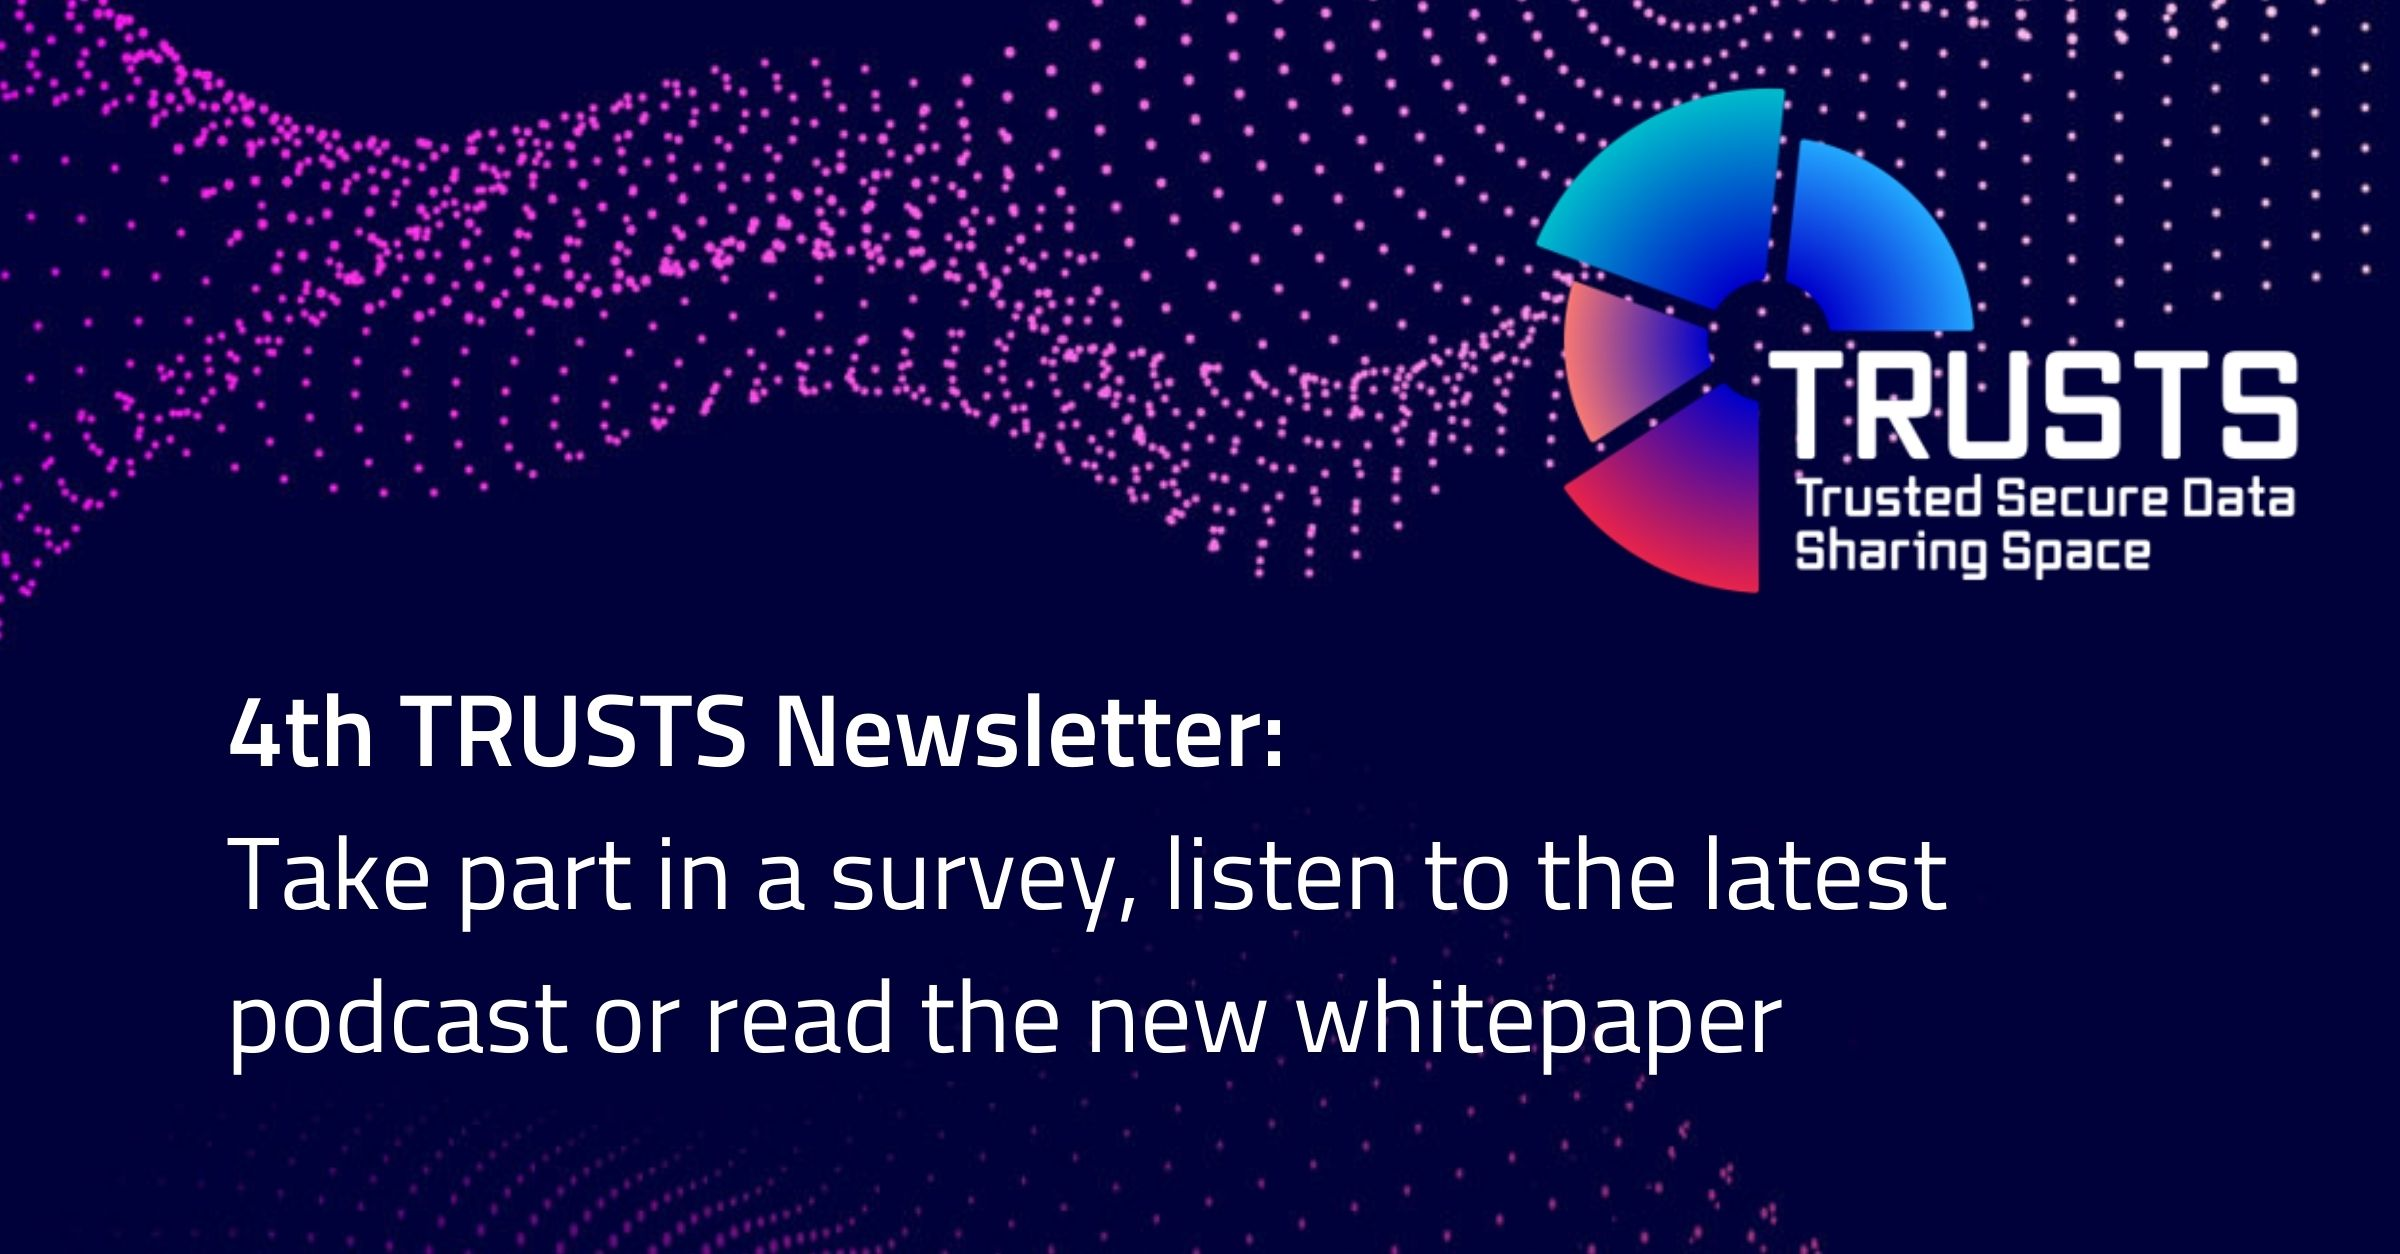 4th TRUSTS newsletter